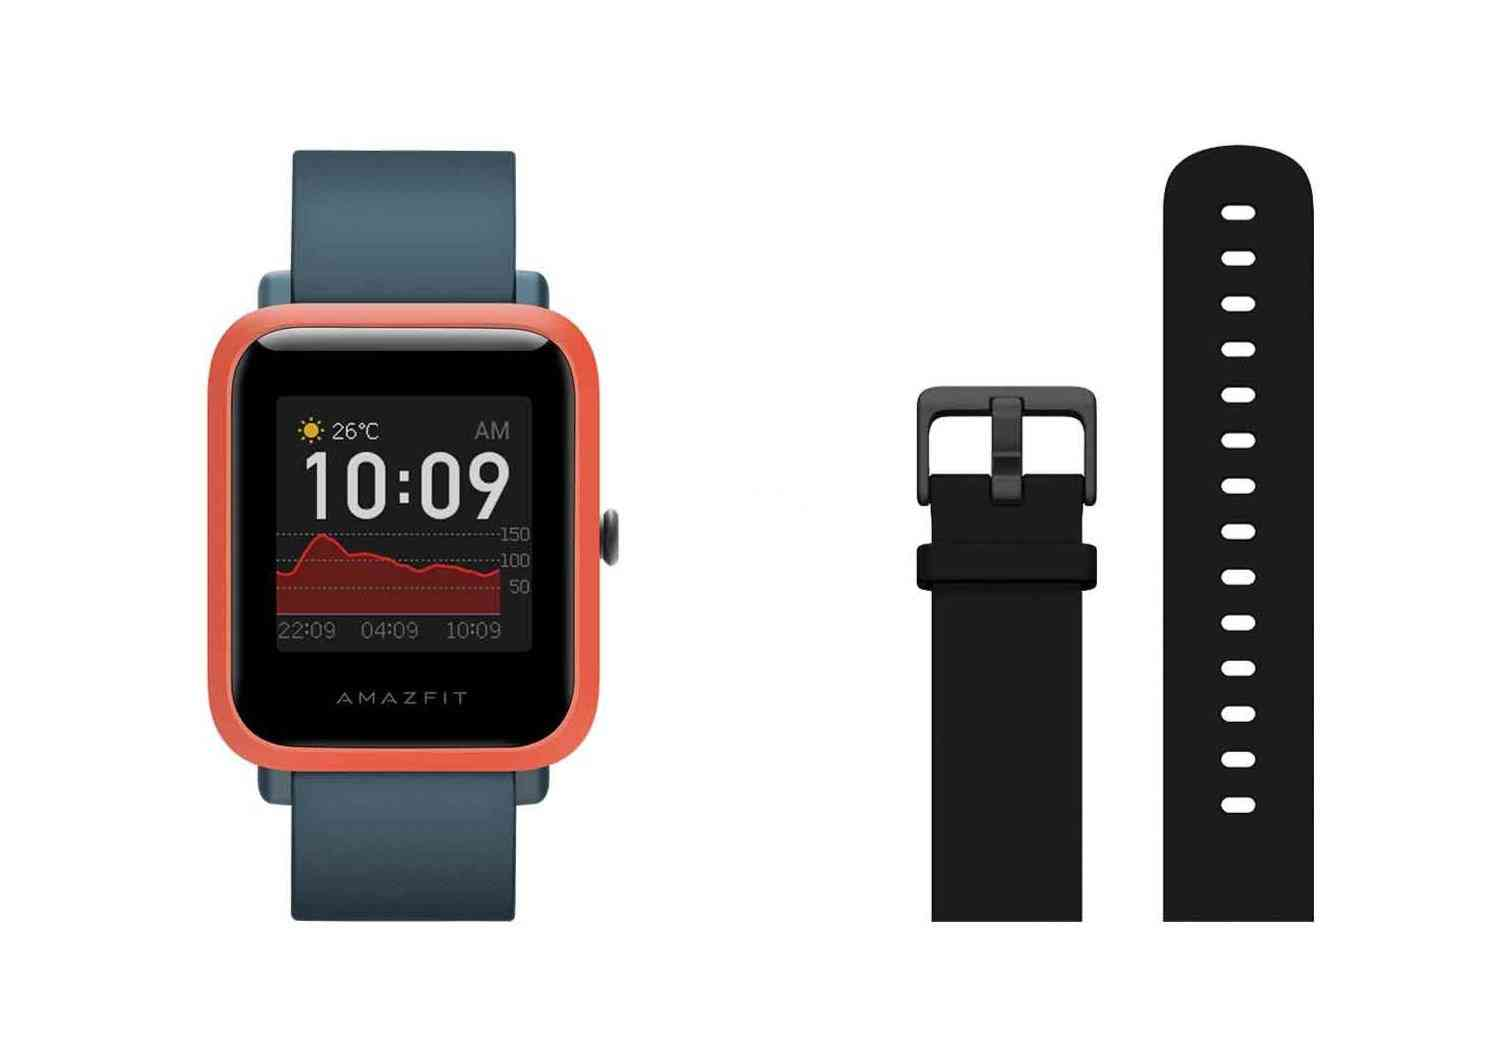 Smart Watch Waterproof Built In Gps Glonass Bluetooth For Android Ios Phone